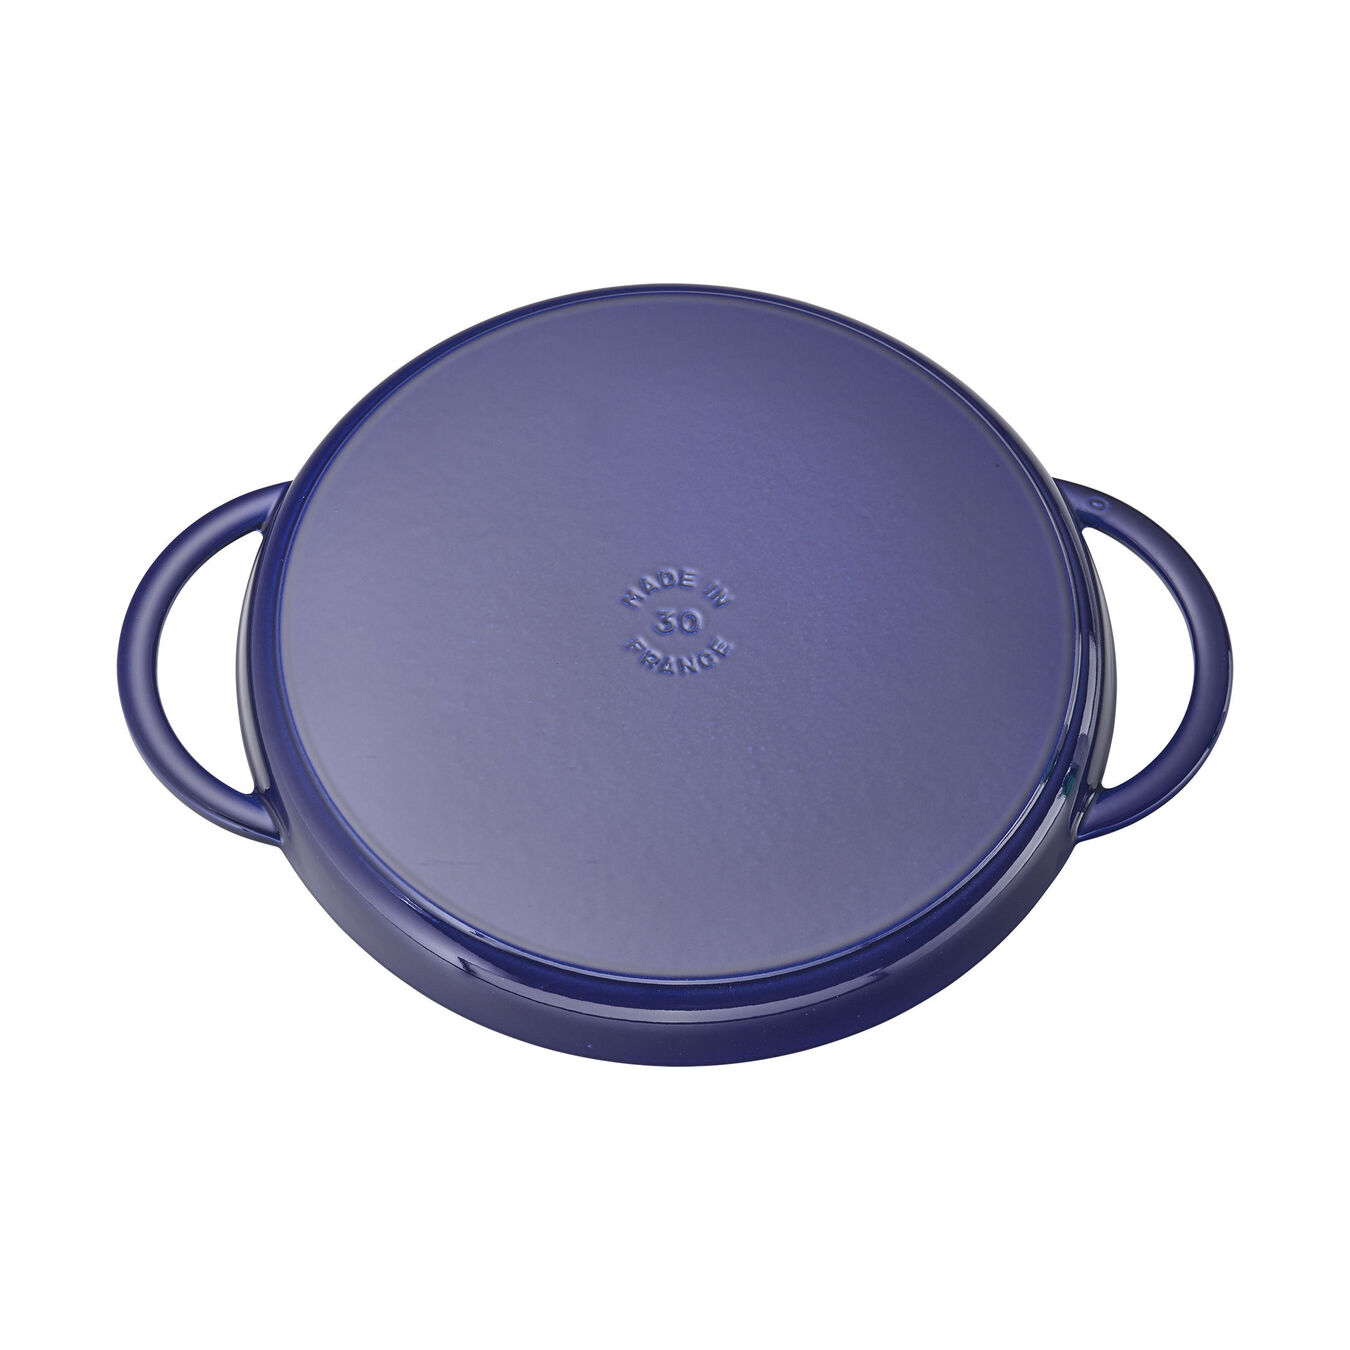 30 cm Cast iron Griddle, dark-blue - Visual Imperfections,,large 3